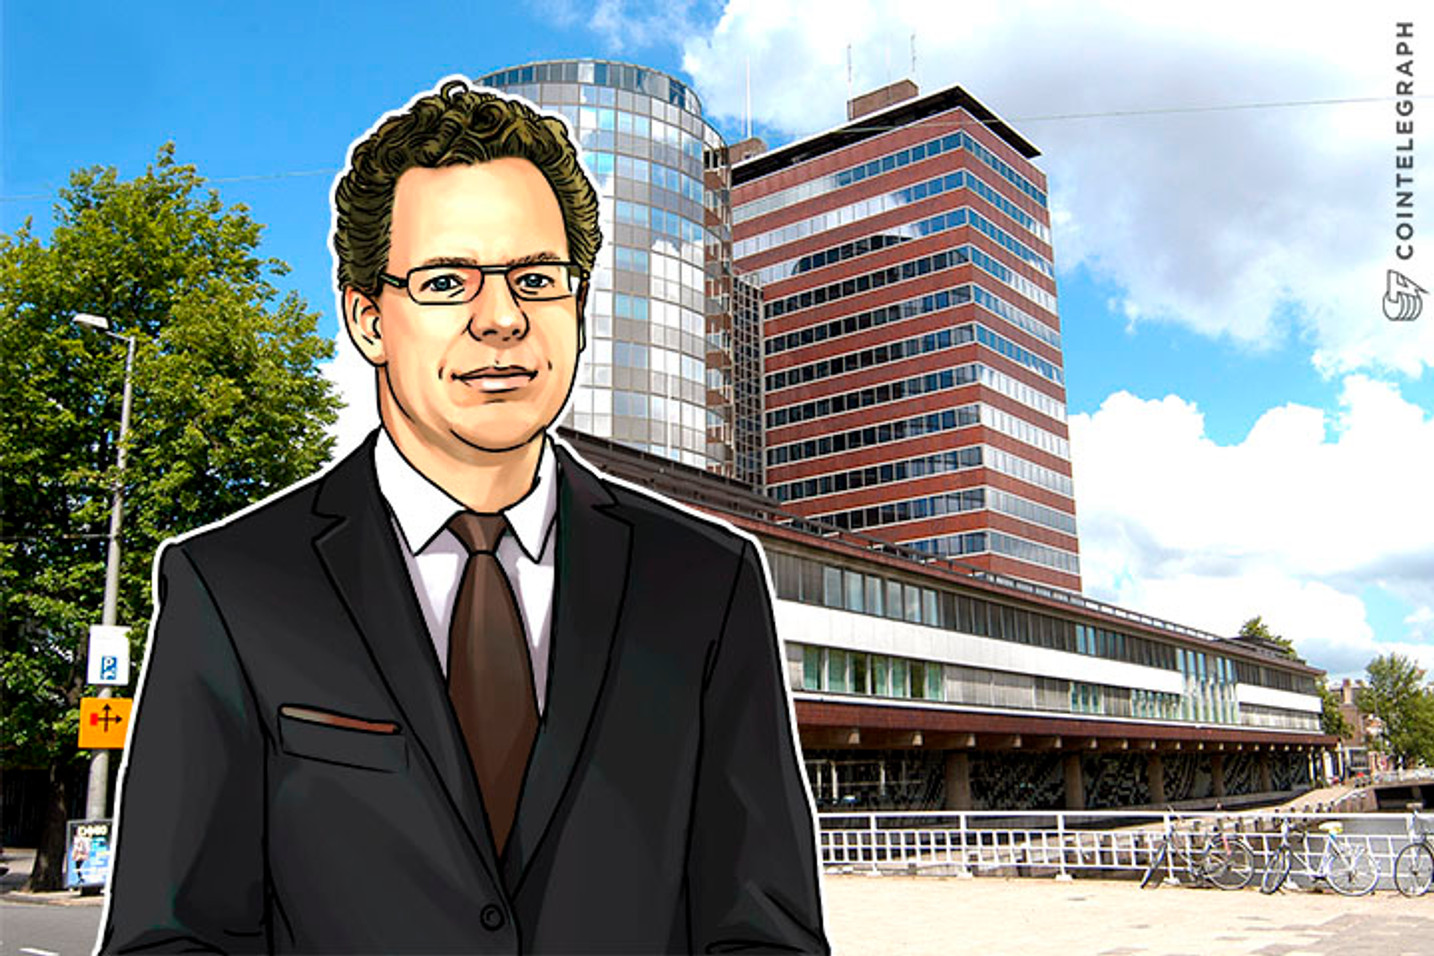 The Dutch Are Betting on Blockchain for Their Financial System